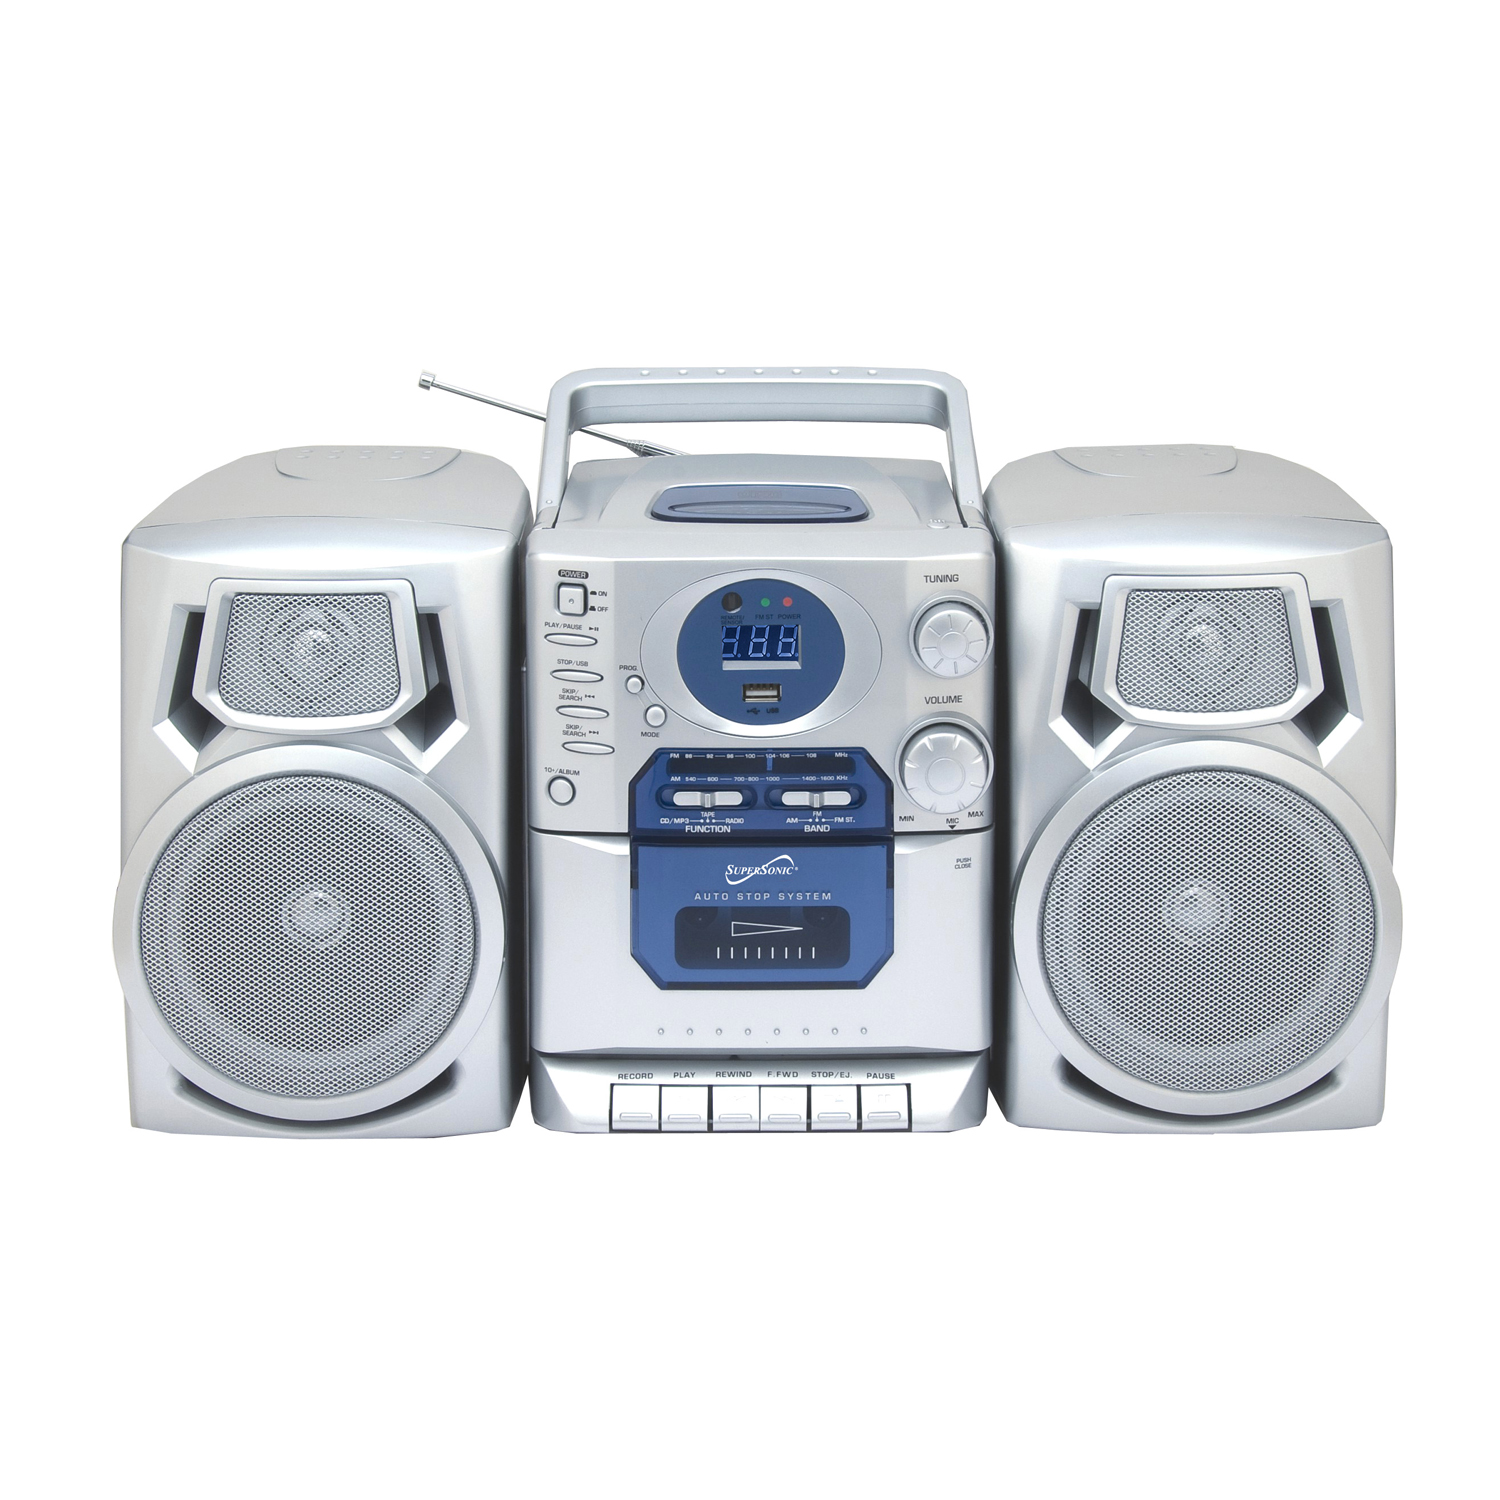 Supersonic SC-803 Portable MP3/CD Player with Cassette Recorder, AM/FM Radio & USB Input